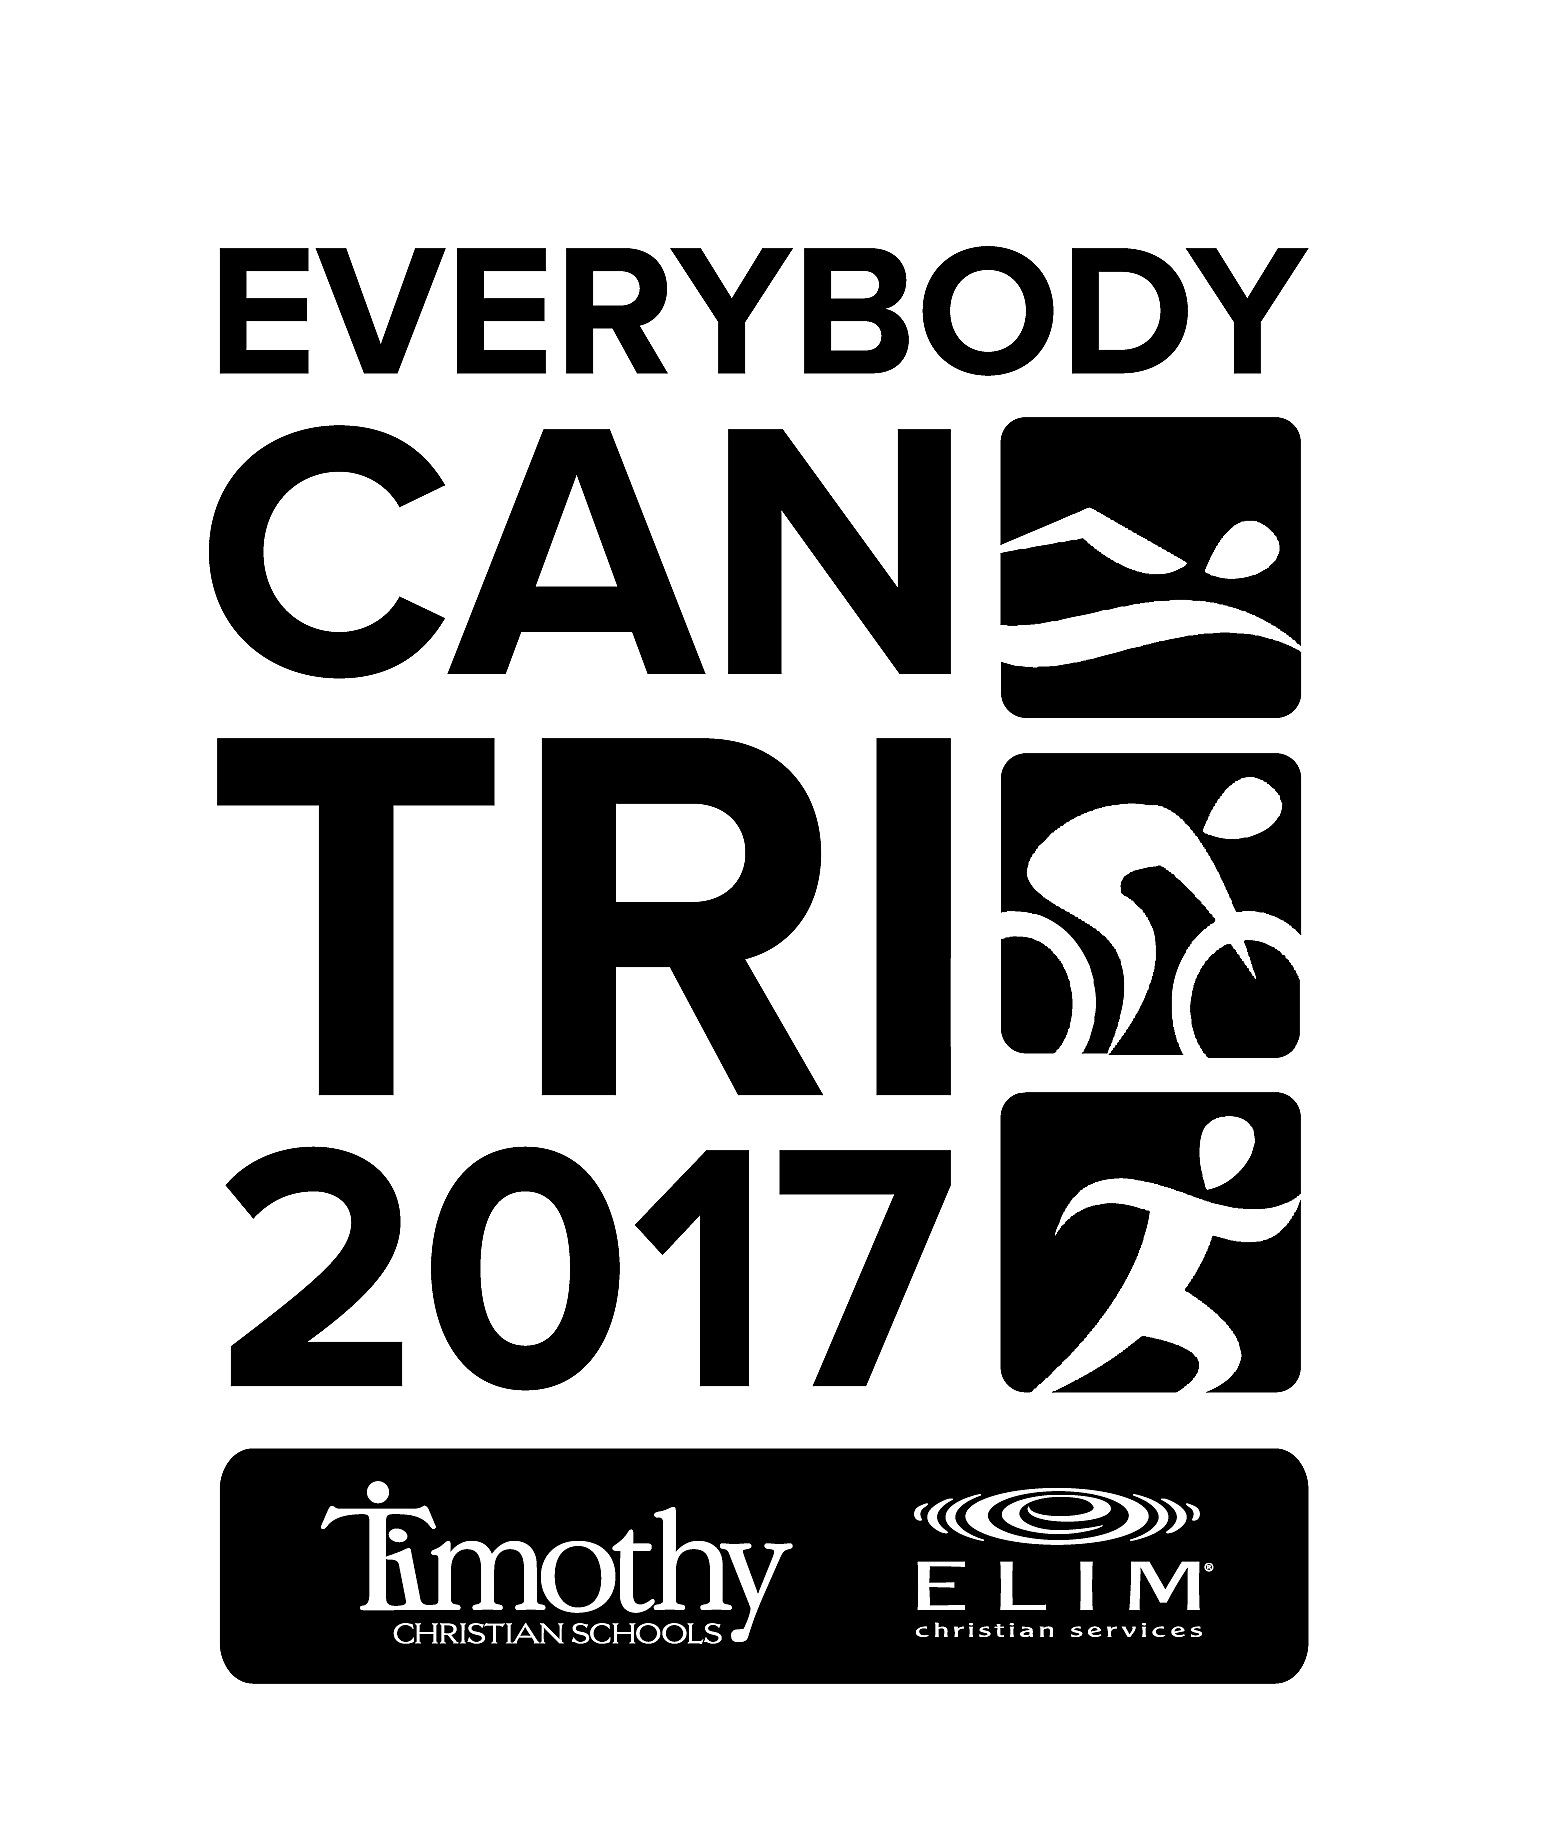 Timothy Christian Triathlon 2017 Photo